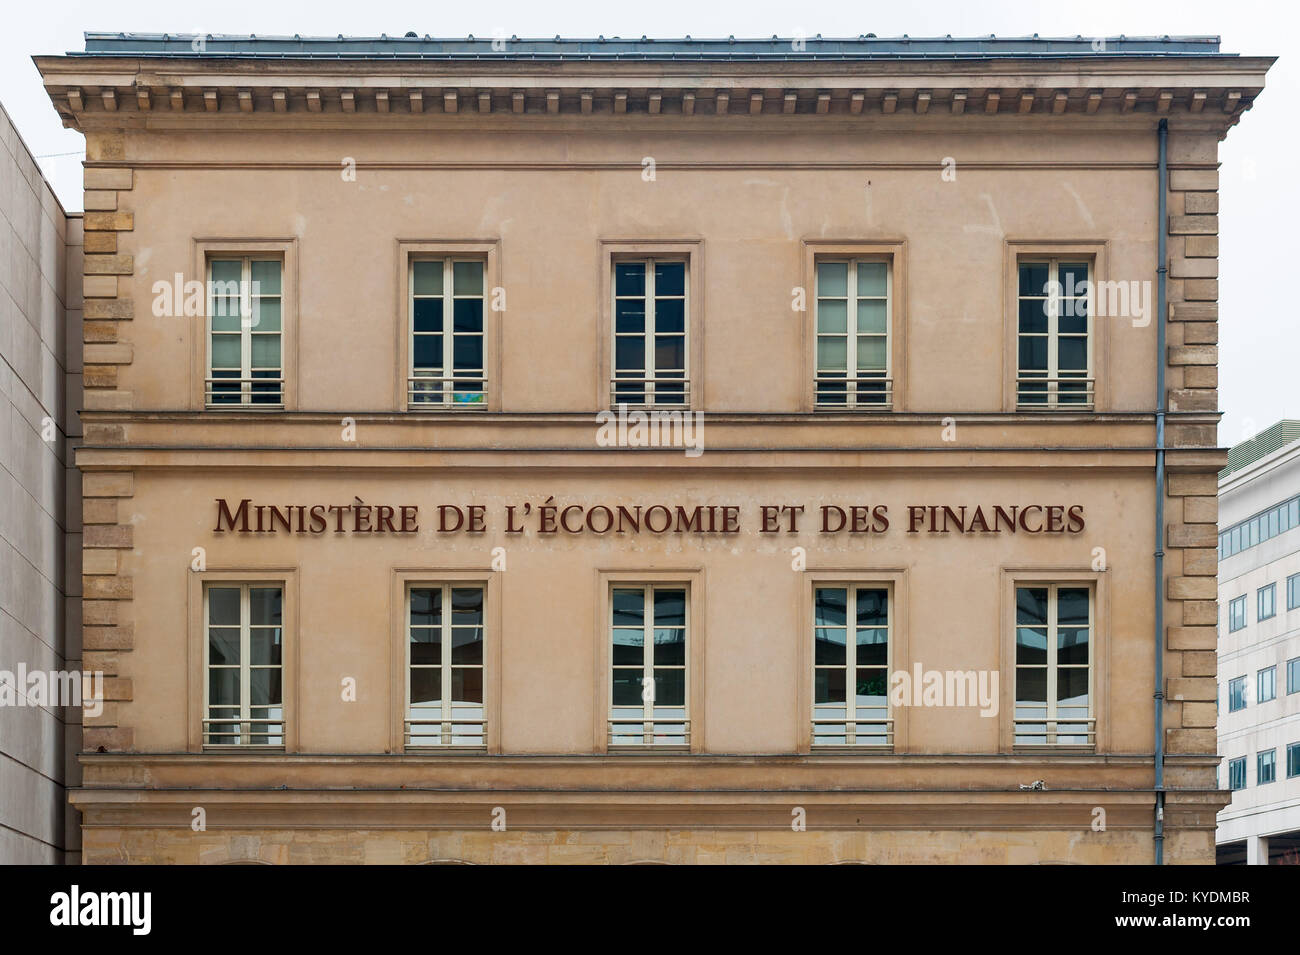 Bercy french ministry of finance entrance - Stock Image